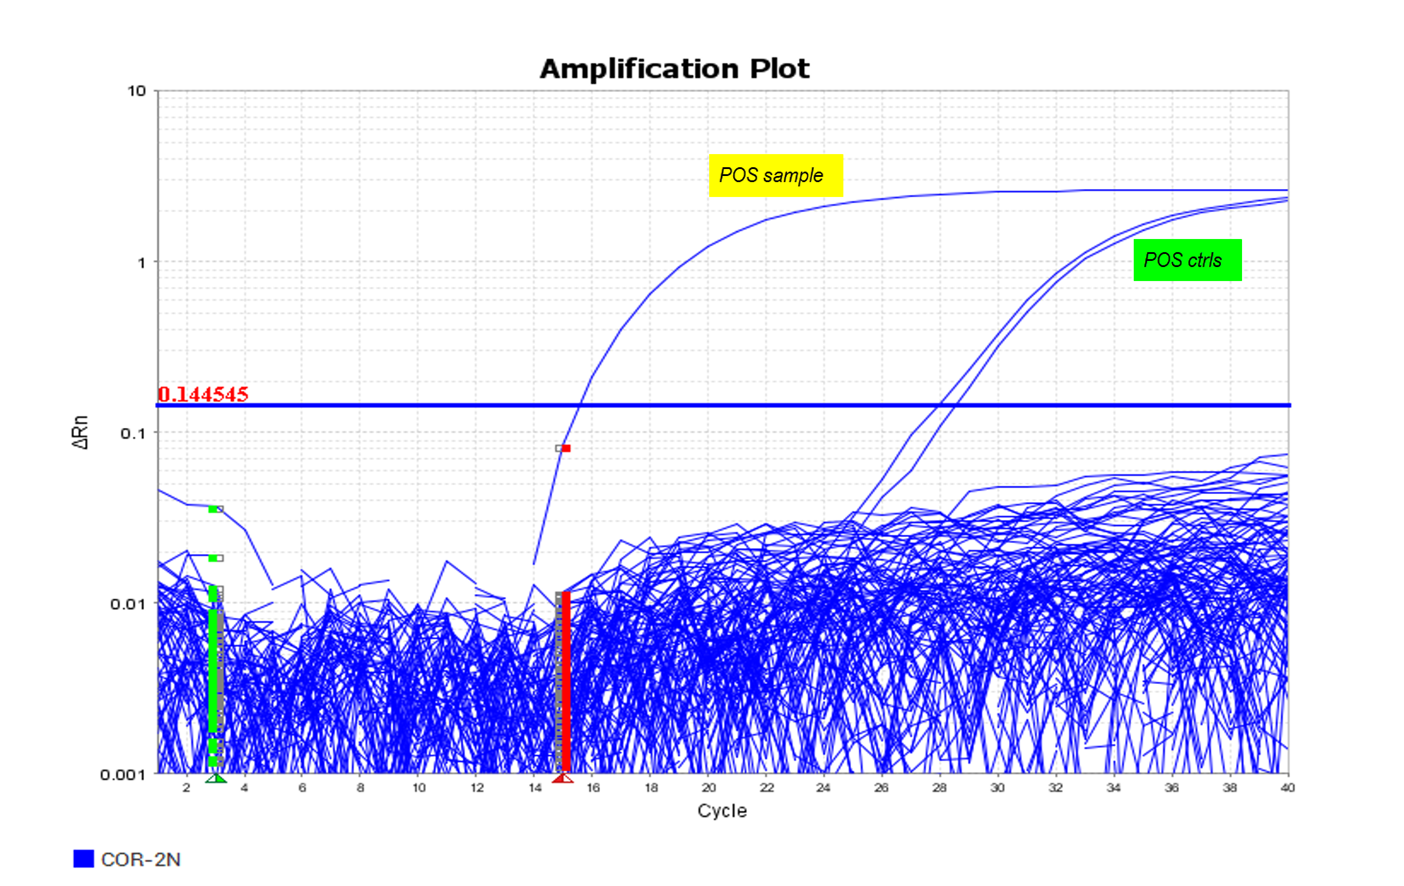 Figure 2- Amplification curves for samples from a 384-well plate